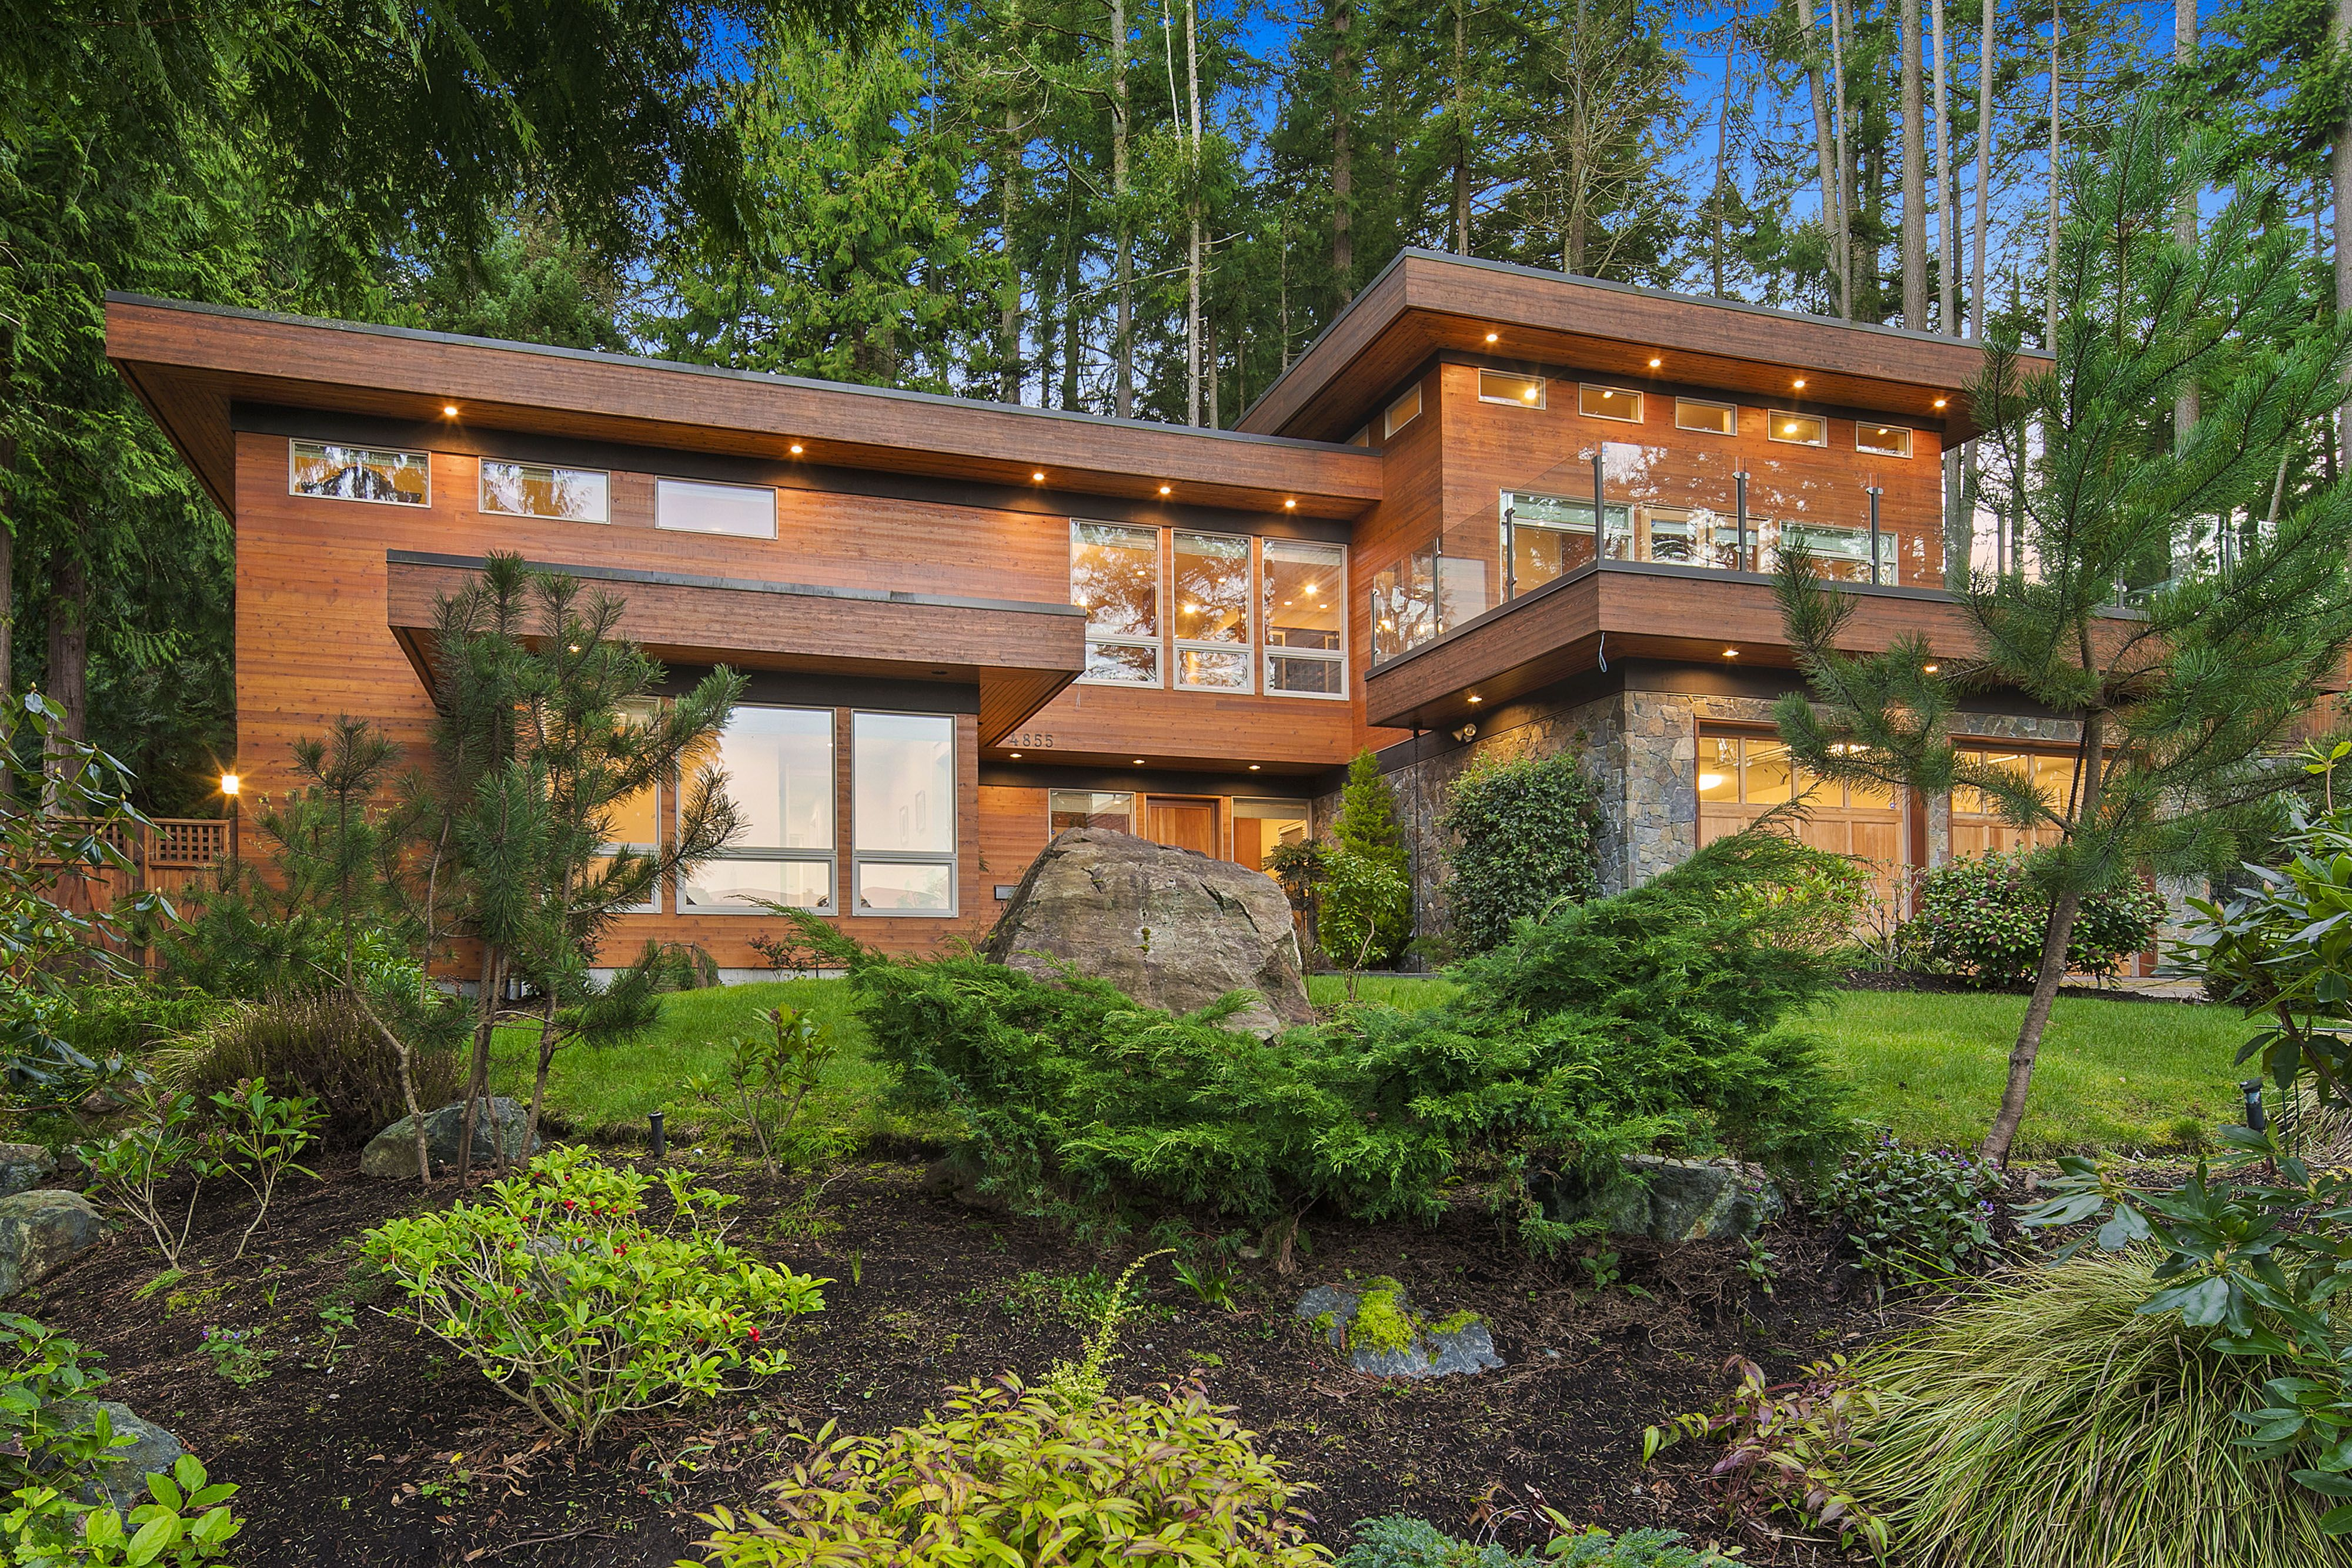 4855 Story Ln A West Coast Modern Contemporary Listing In